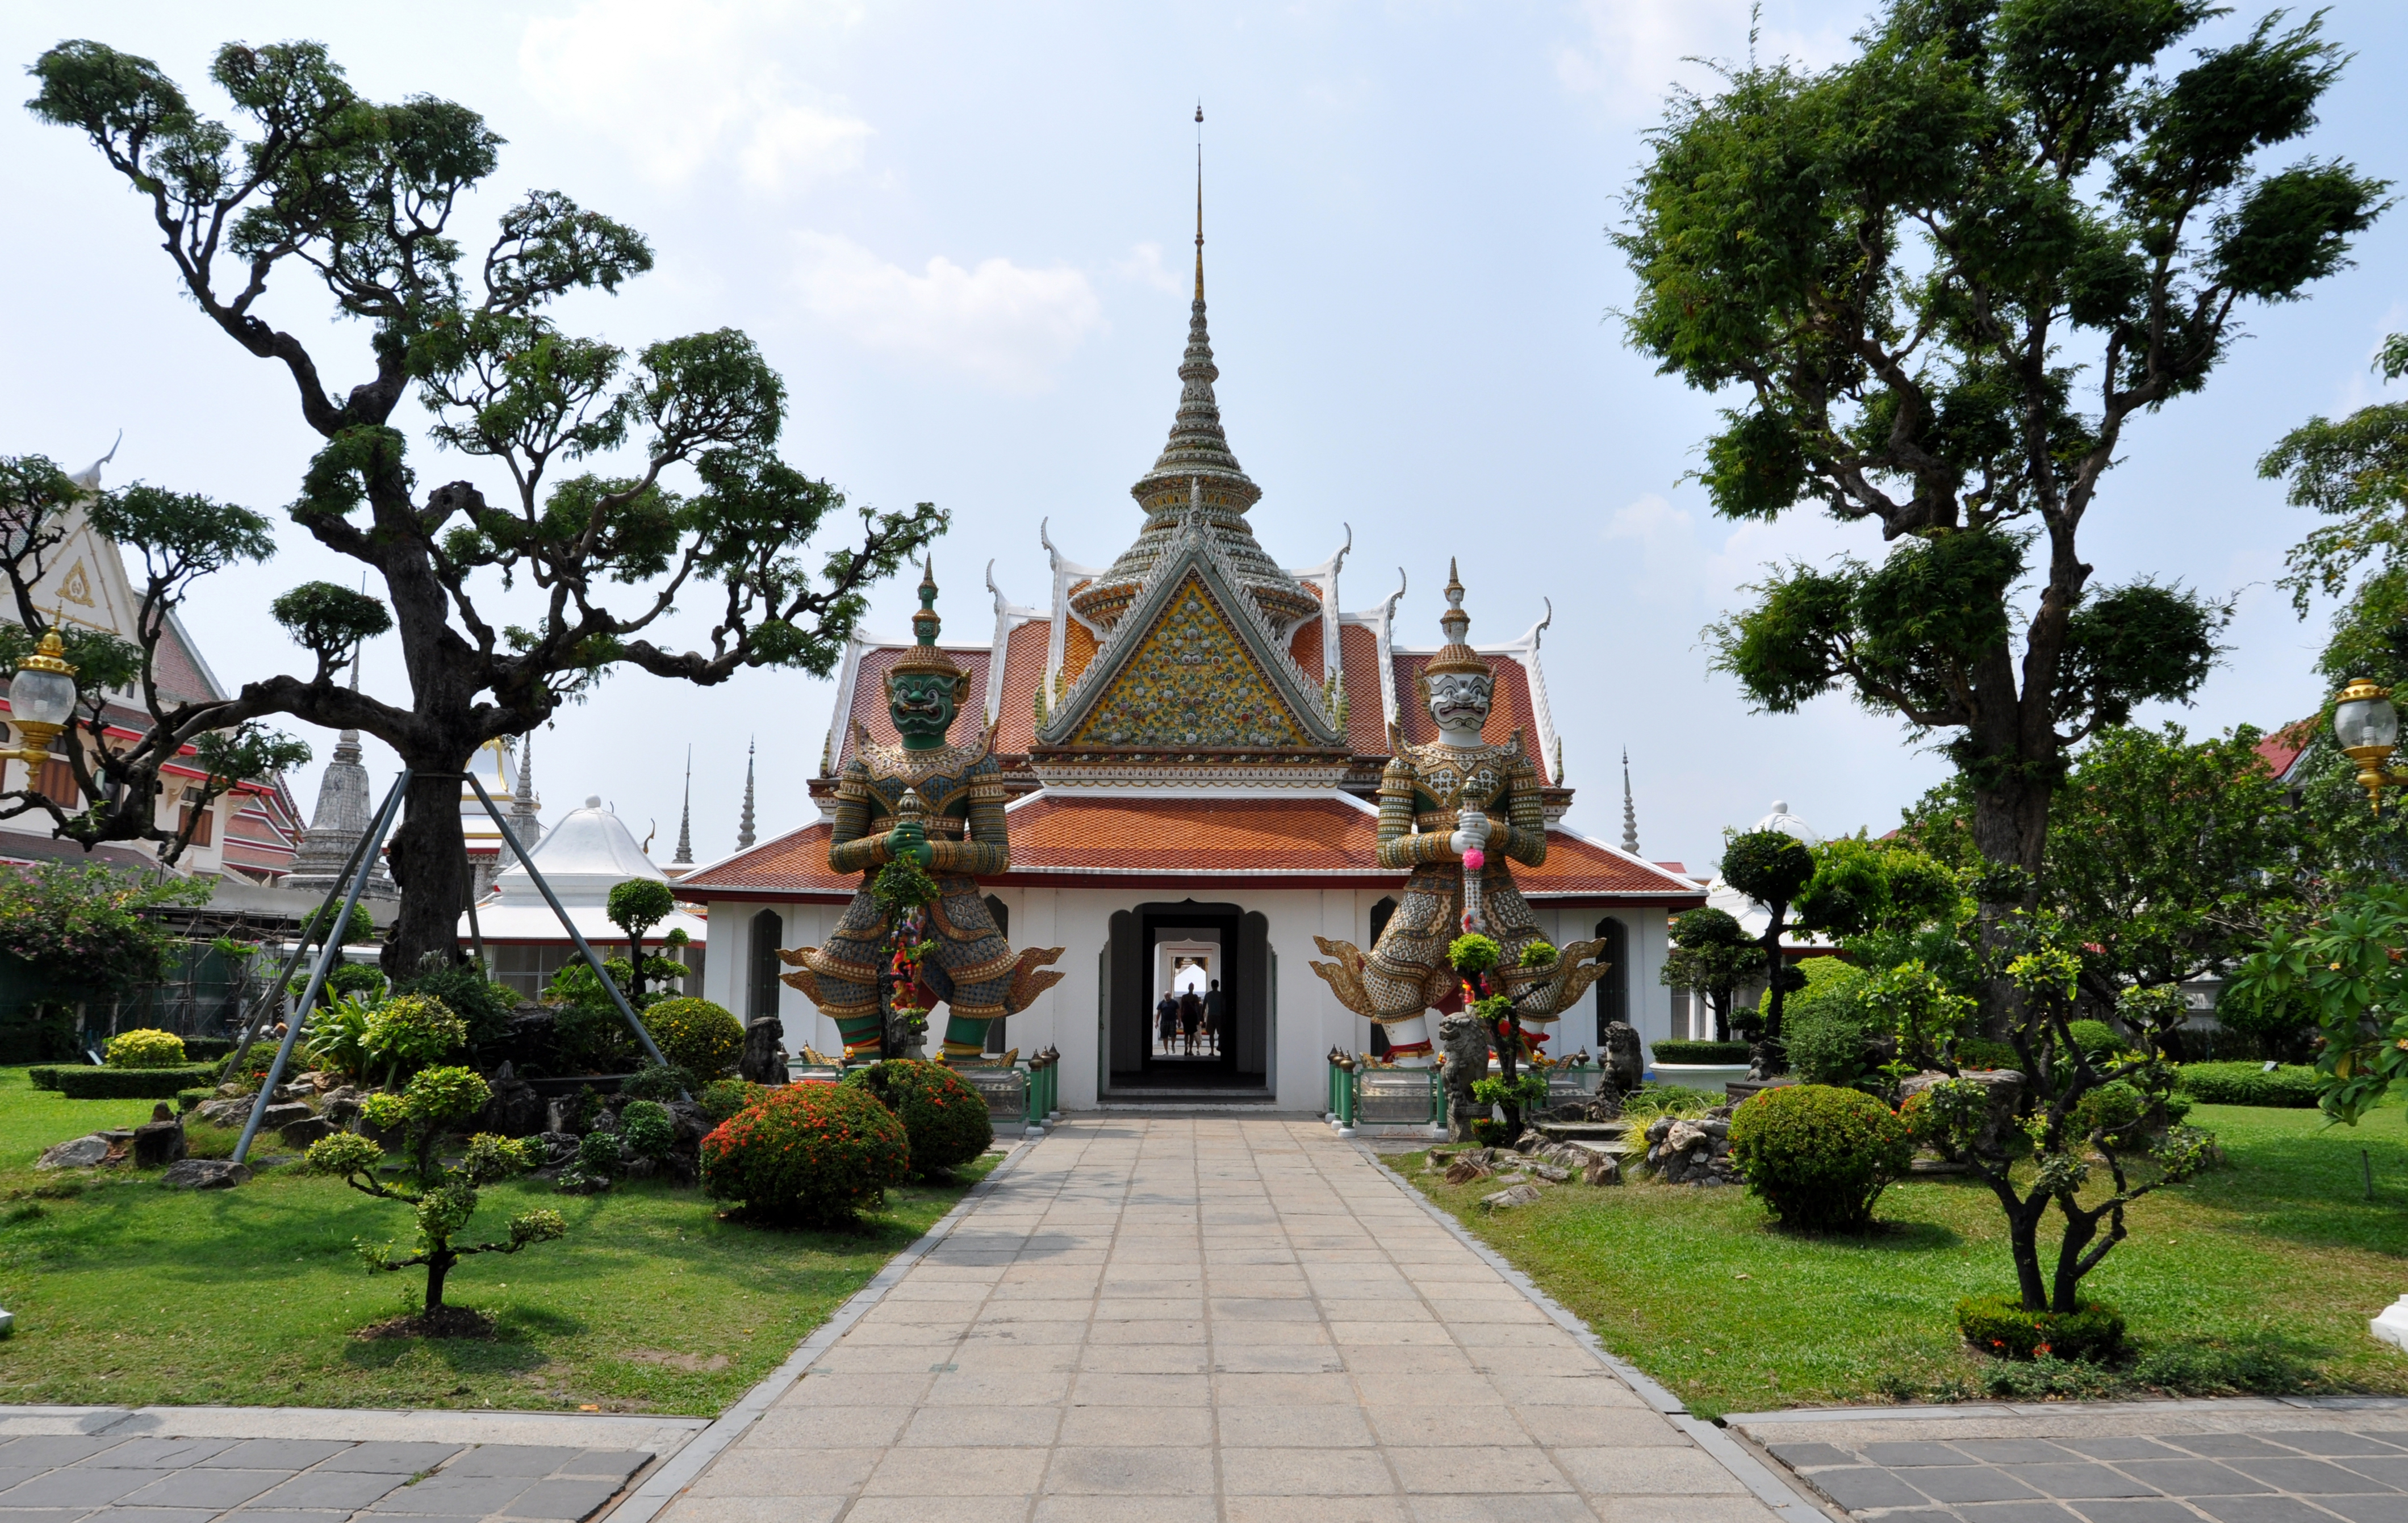 New featured picture: User:WPPilot\u0027s photograph of the front entrance of the Ordination Hall of the Buddhist temple Wat Arun in Bangkok, Thailand